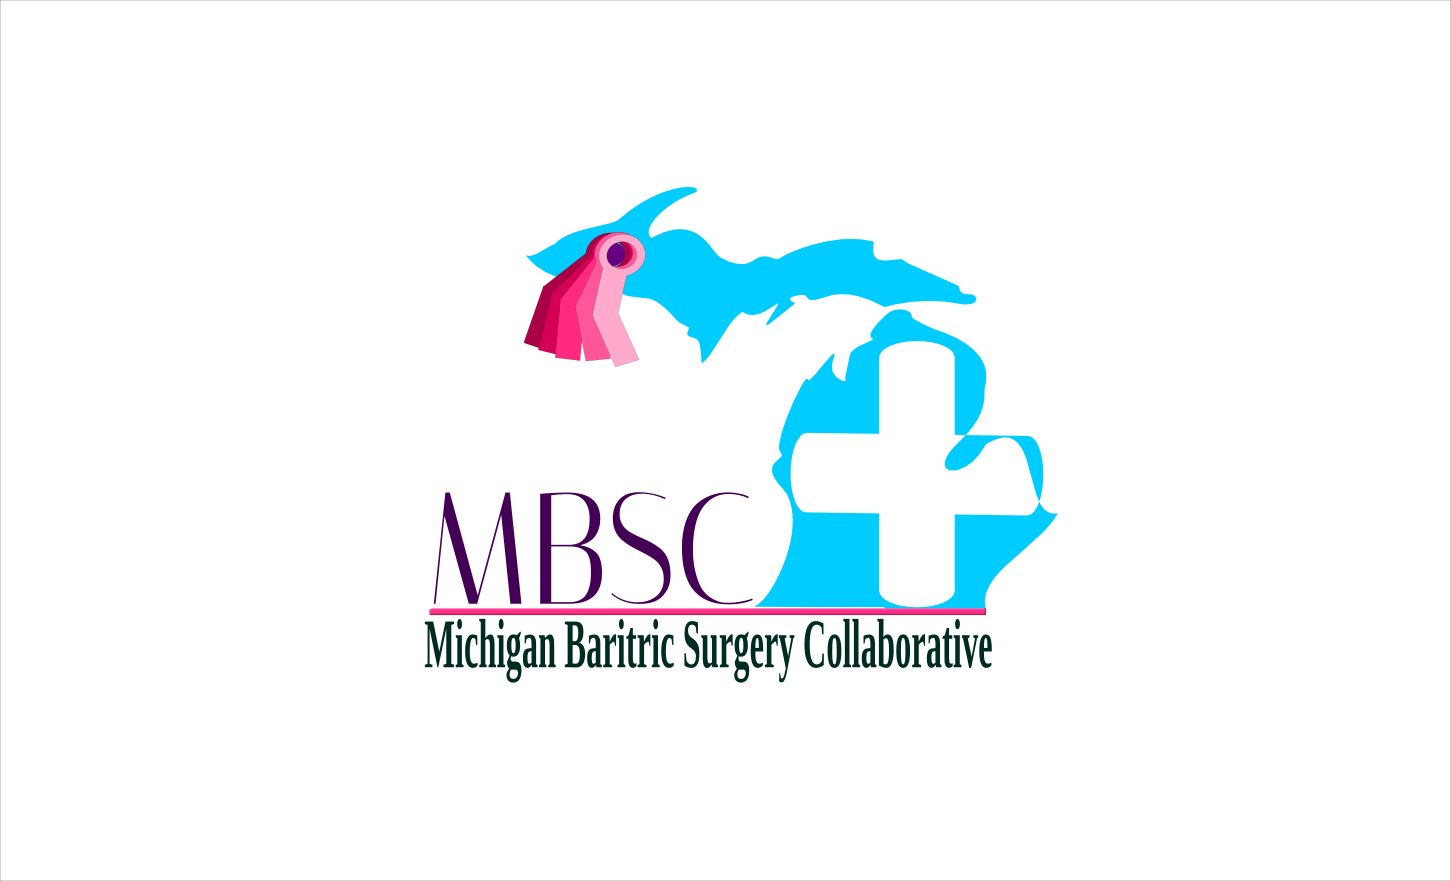 Atrevido, Tradicional, Healthcare Diseño De Logo For Mbsc. Business Management Information. Help Desk Procedures Template. Block Level Backup Engine Service. Insurance Company For Cars Sales Report Excel. New Radiation Treatment For Prostate Cancer. Vegetable Garden Soup Recipe. How To Get Extended Warranty For Used Car. Cancer Natural Treatment Capital One Roth Ira